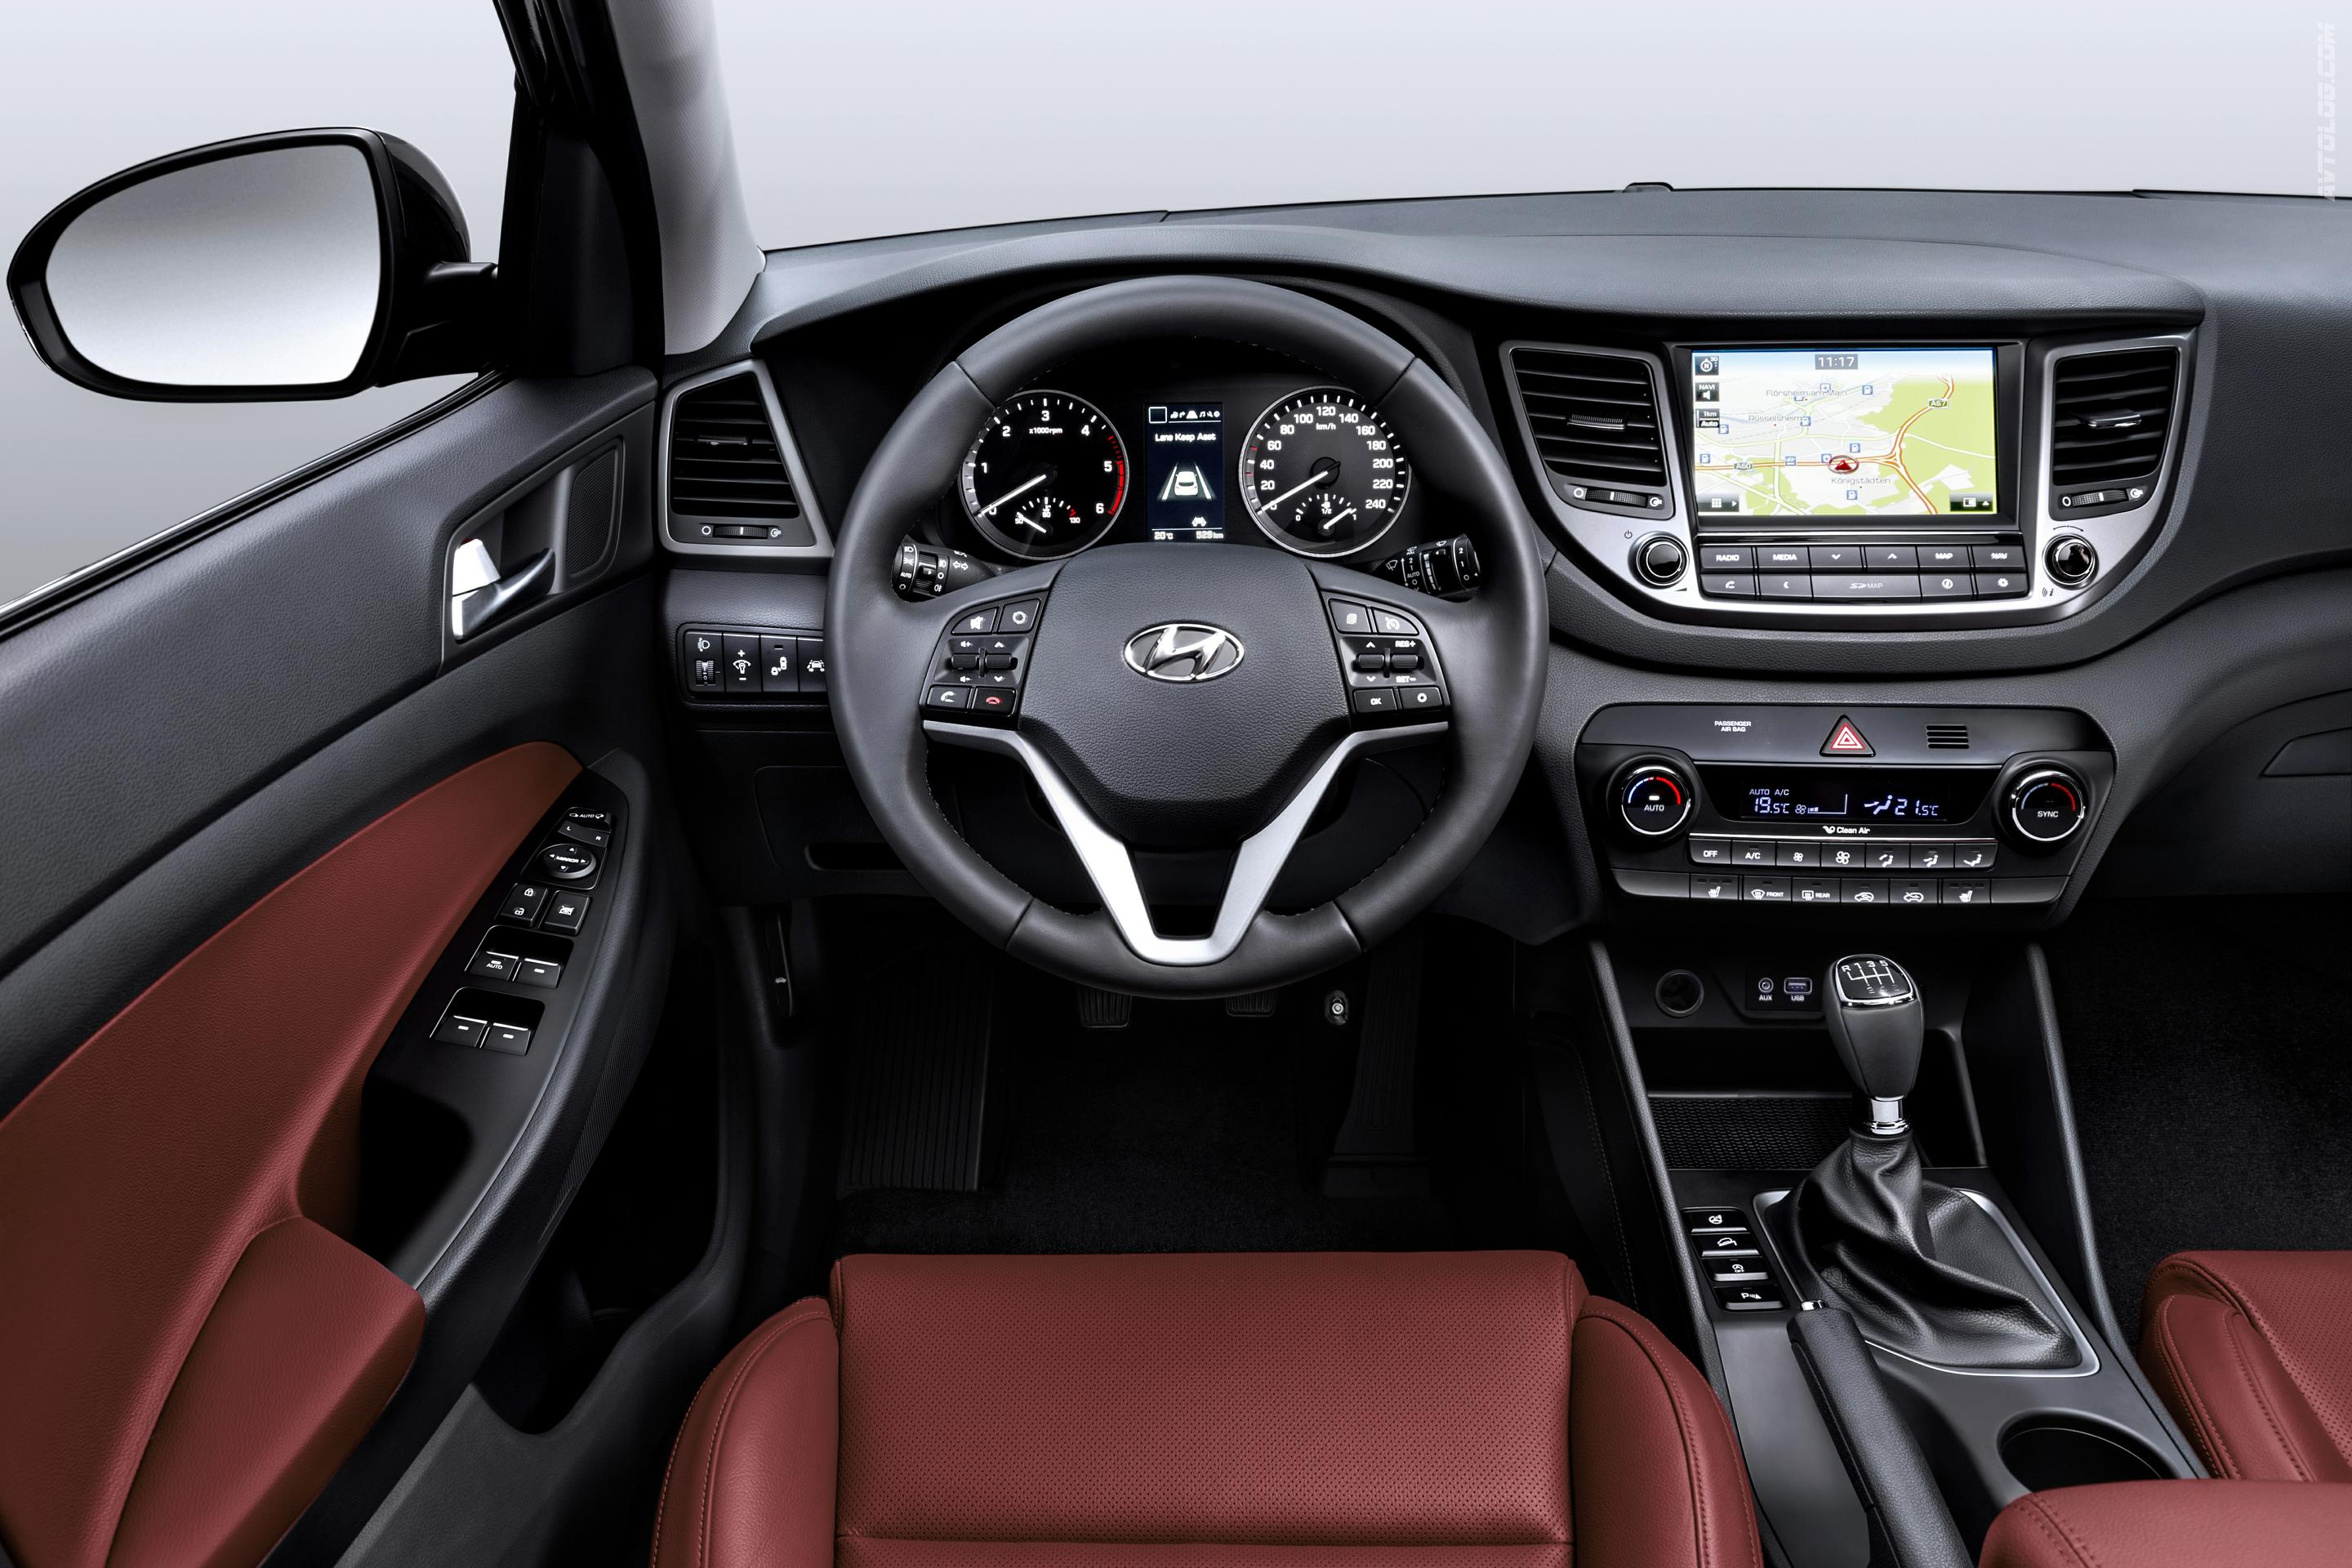 2016 Hyundai I30cw Pictures Information And Specs